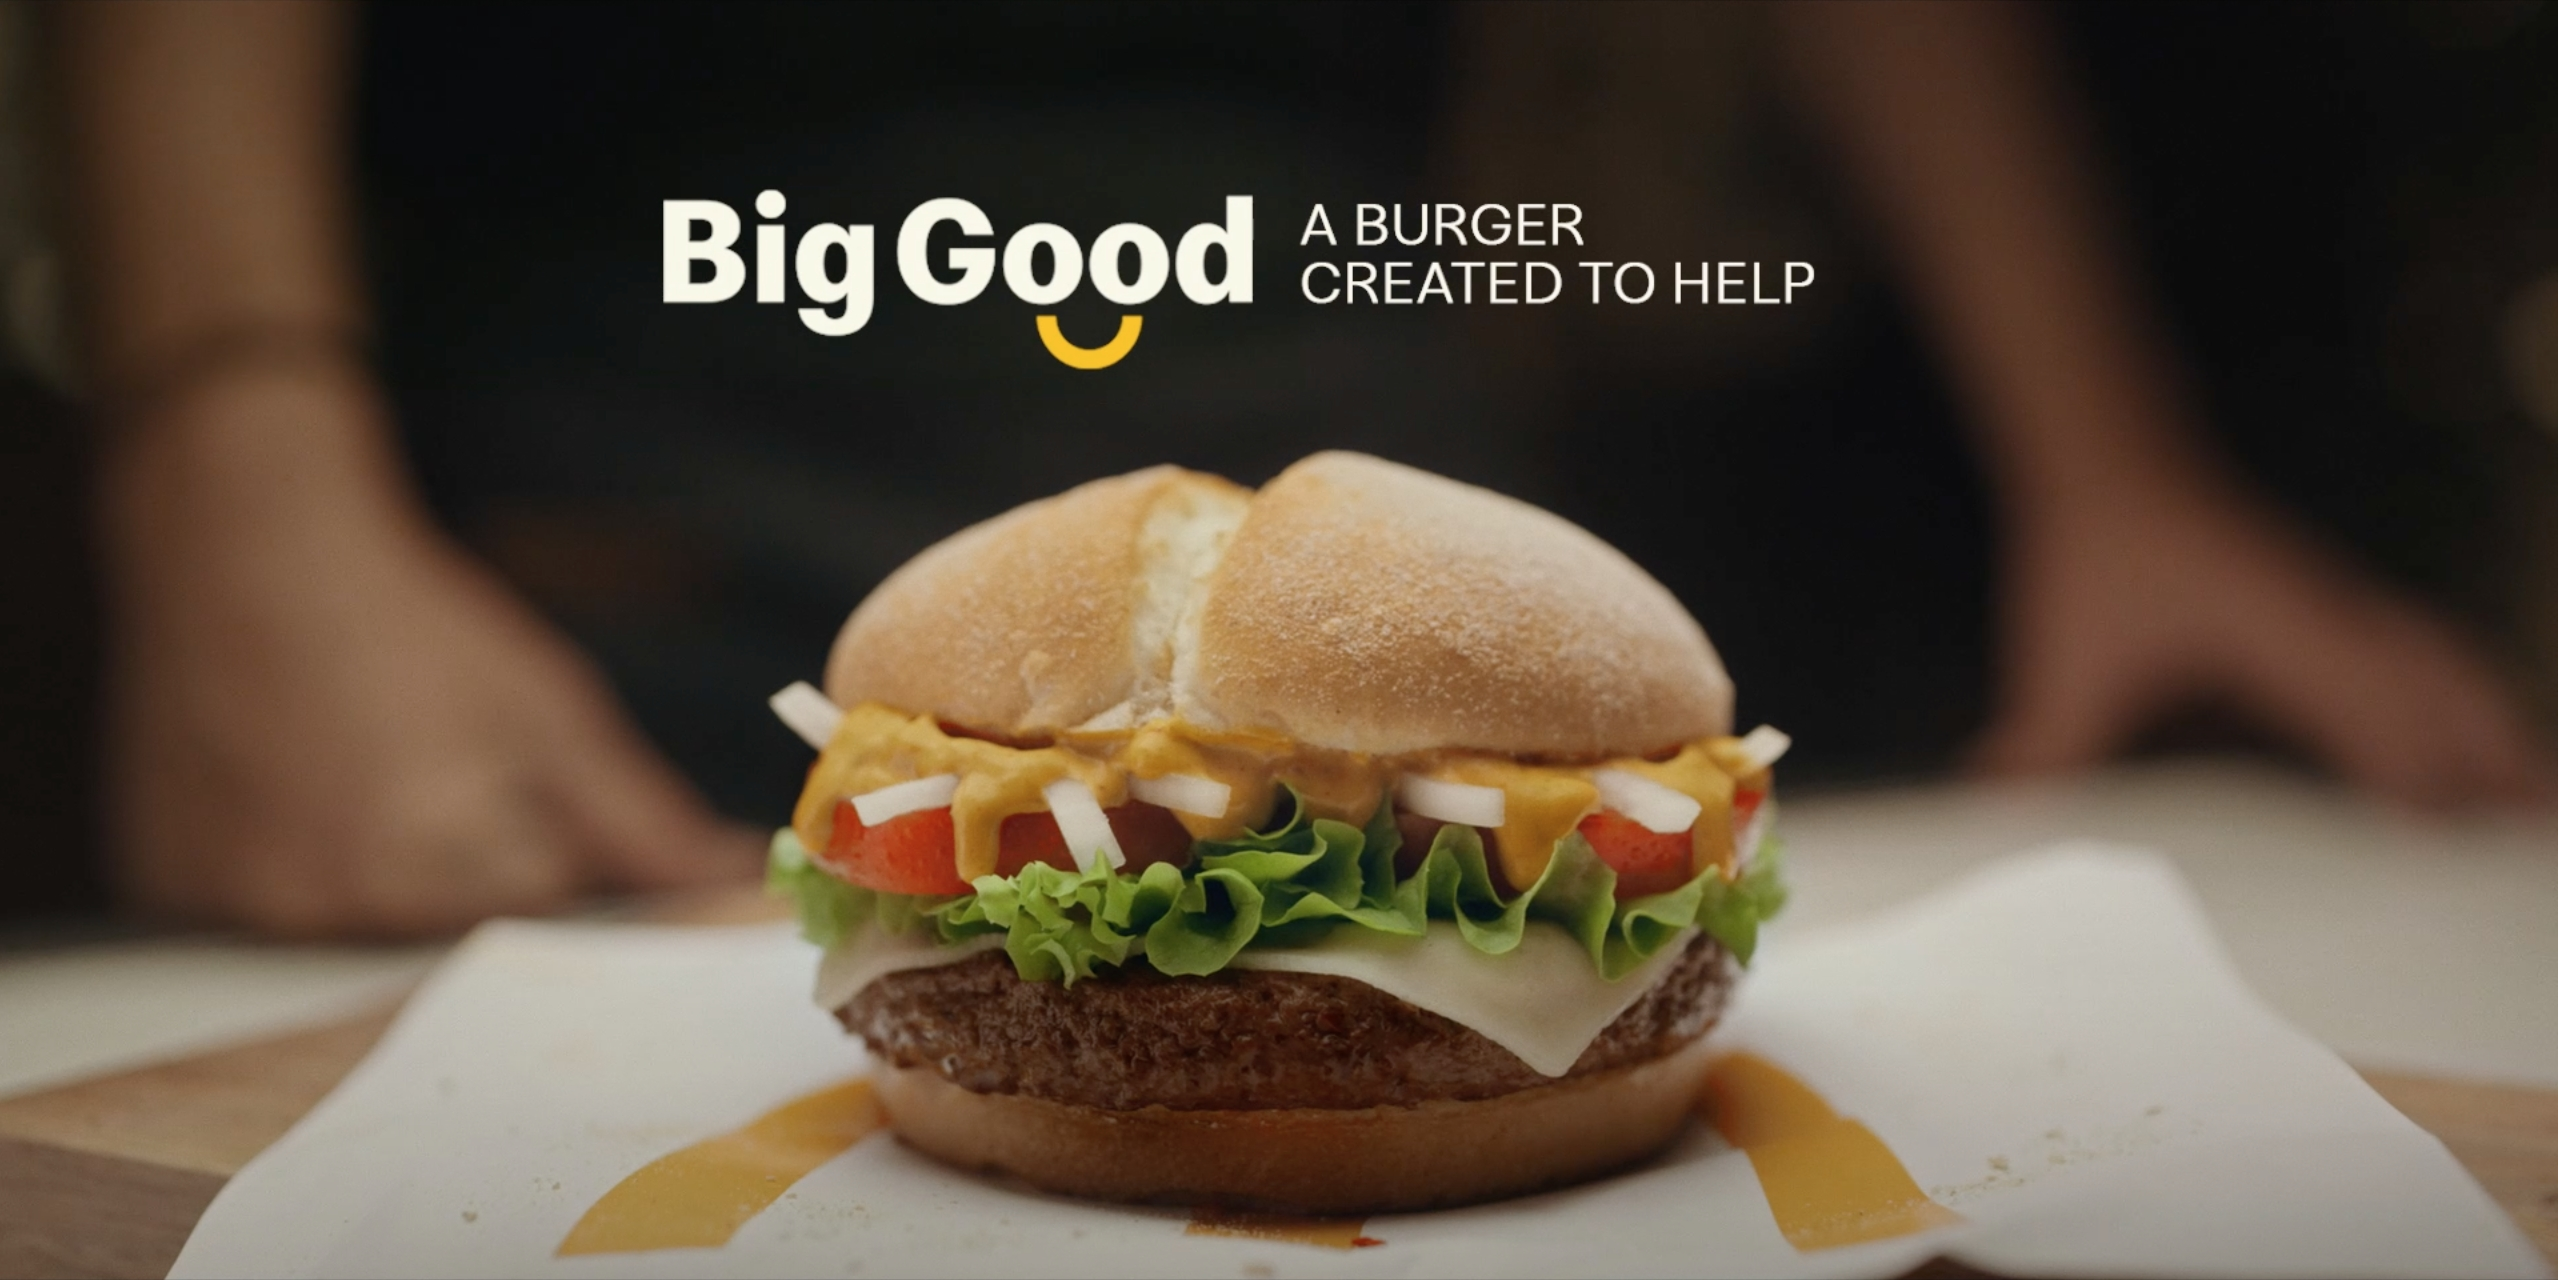 McDonald's Made the 'Big Good' Burger to Help Covid-Stricken Farms in Spain